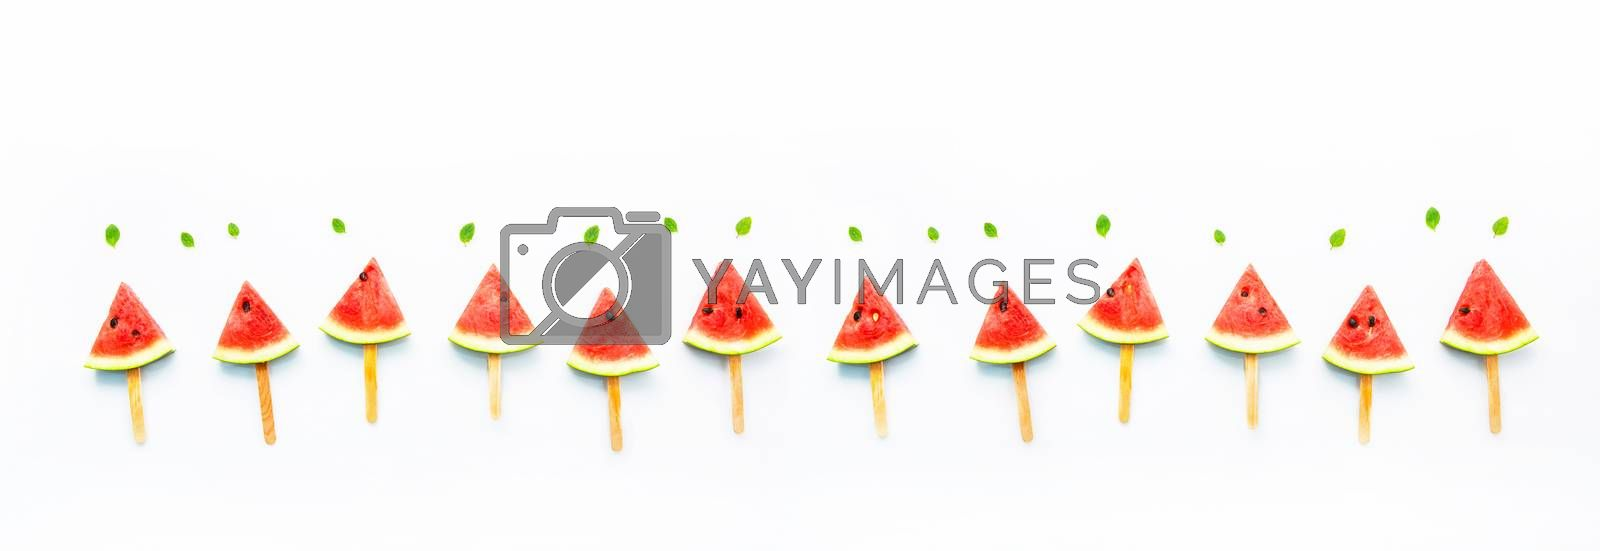 Watermelon slice popsicles and paper mint on white wooden backgr by Bowonpat